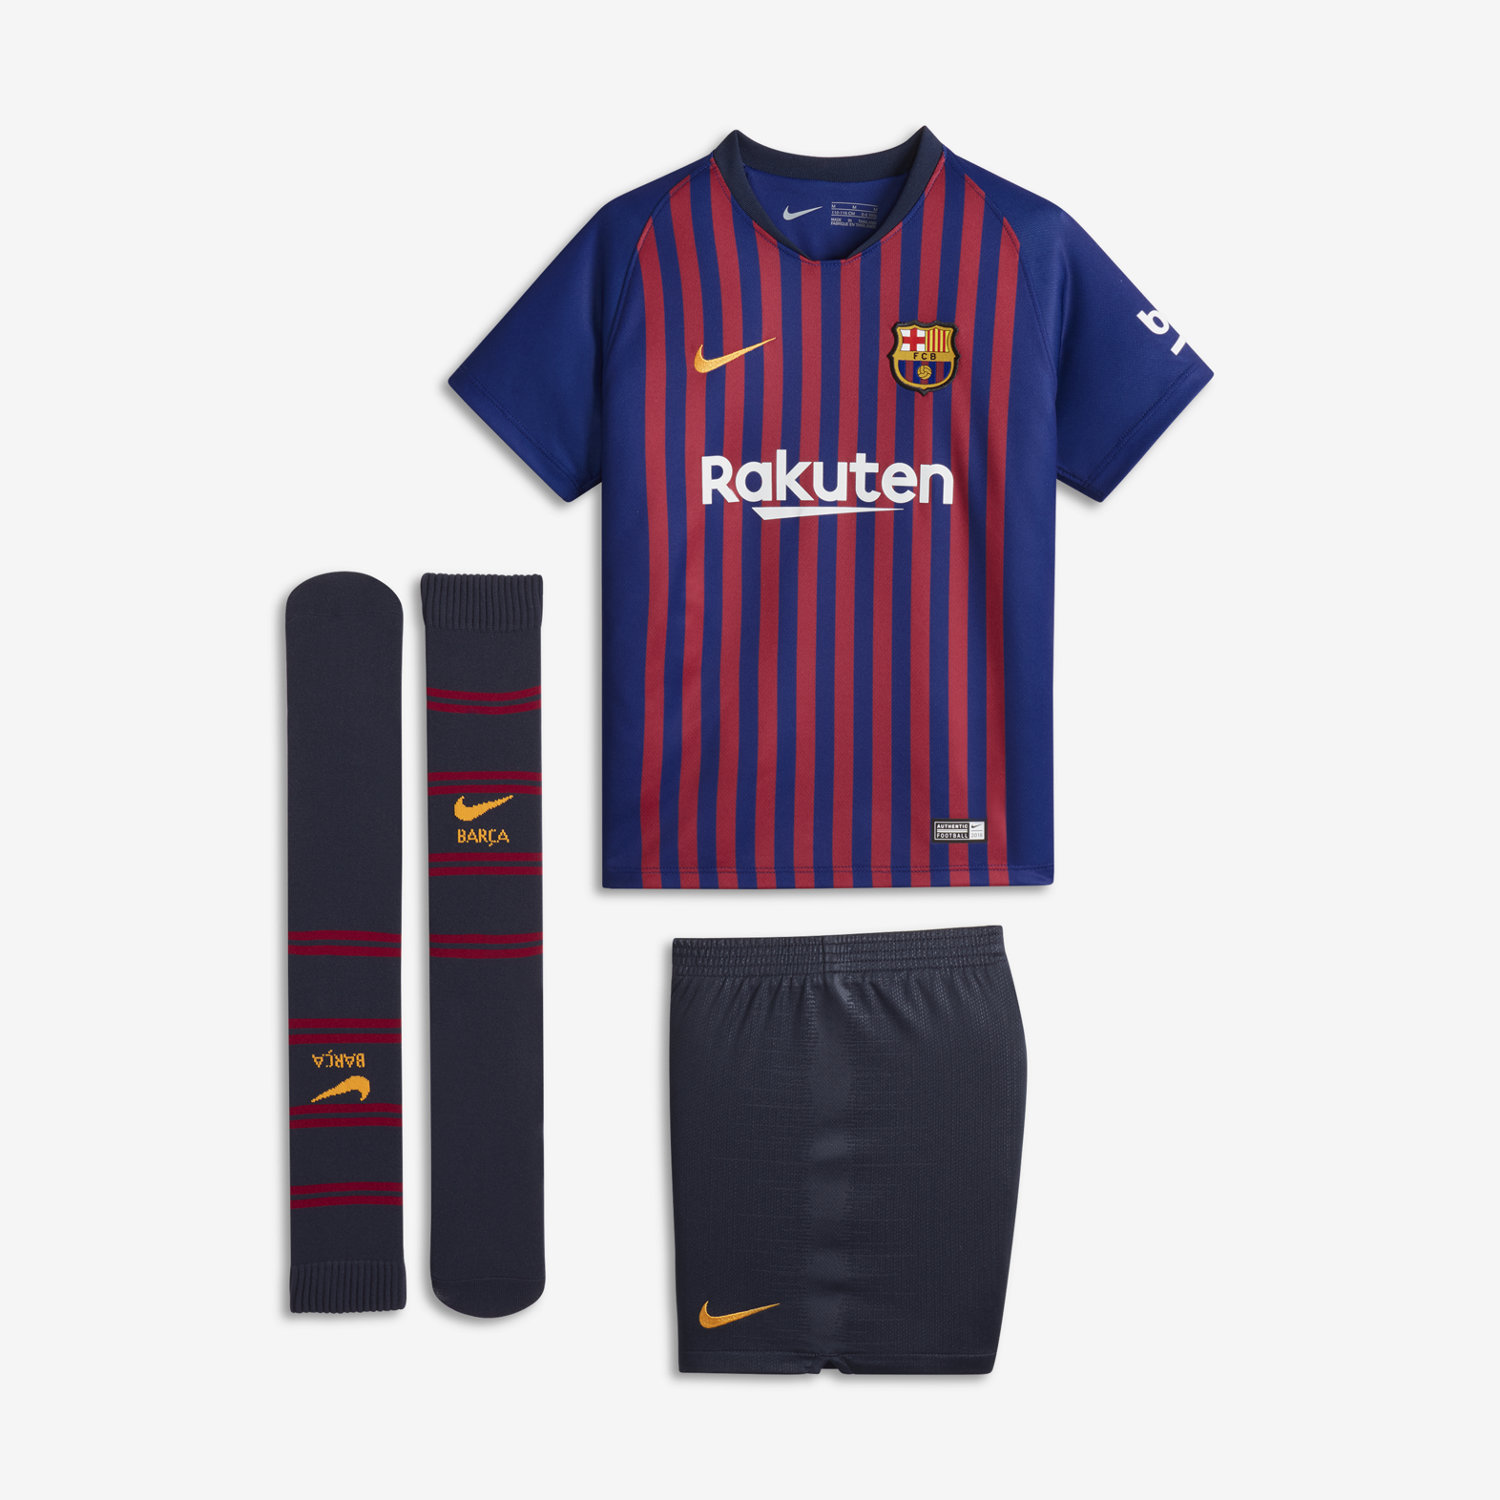 d362e0defe1 2018 19 FC Barcelona Stadium Home Younger Kids  Football Kit. Nike ...